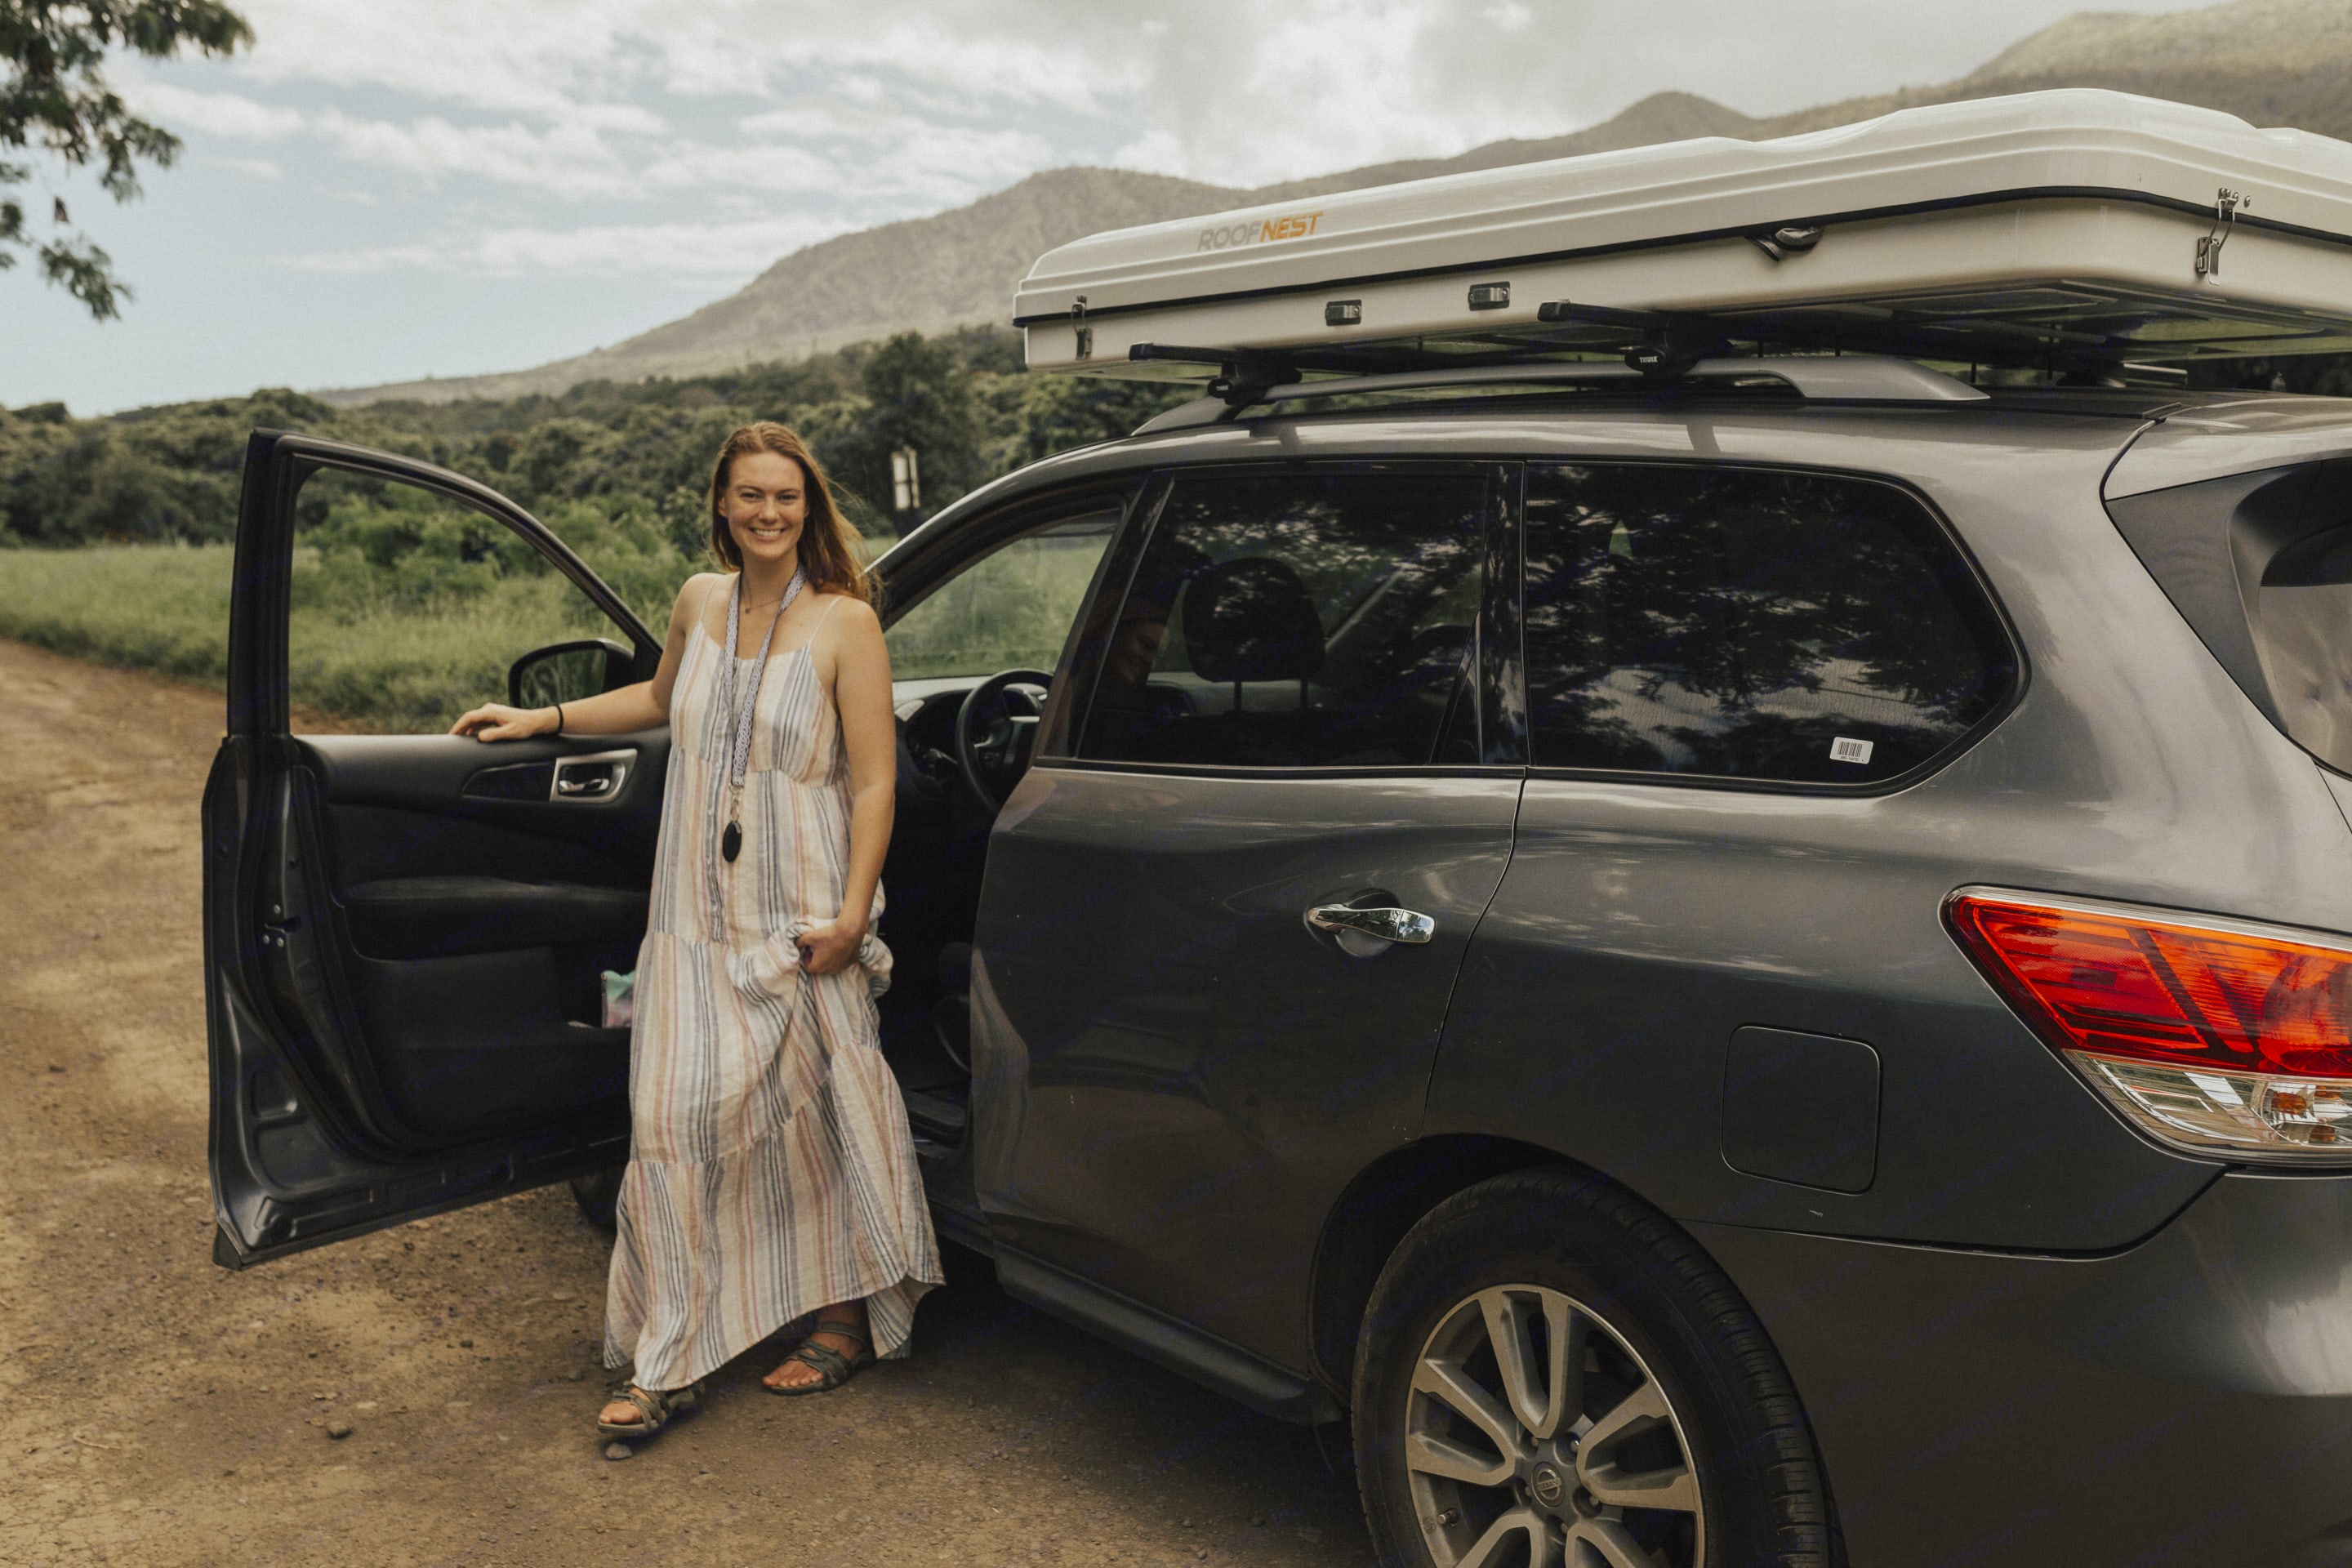 Come over to Maui for the RV adventure of a life time with CampCar.io. Nissan Pathfinder 2016